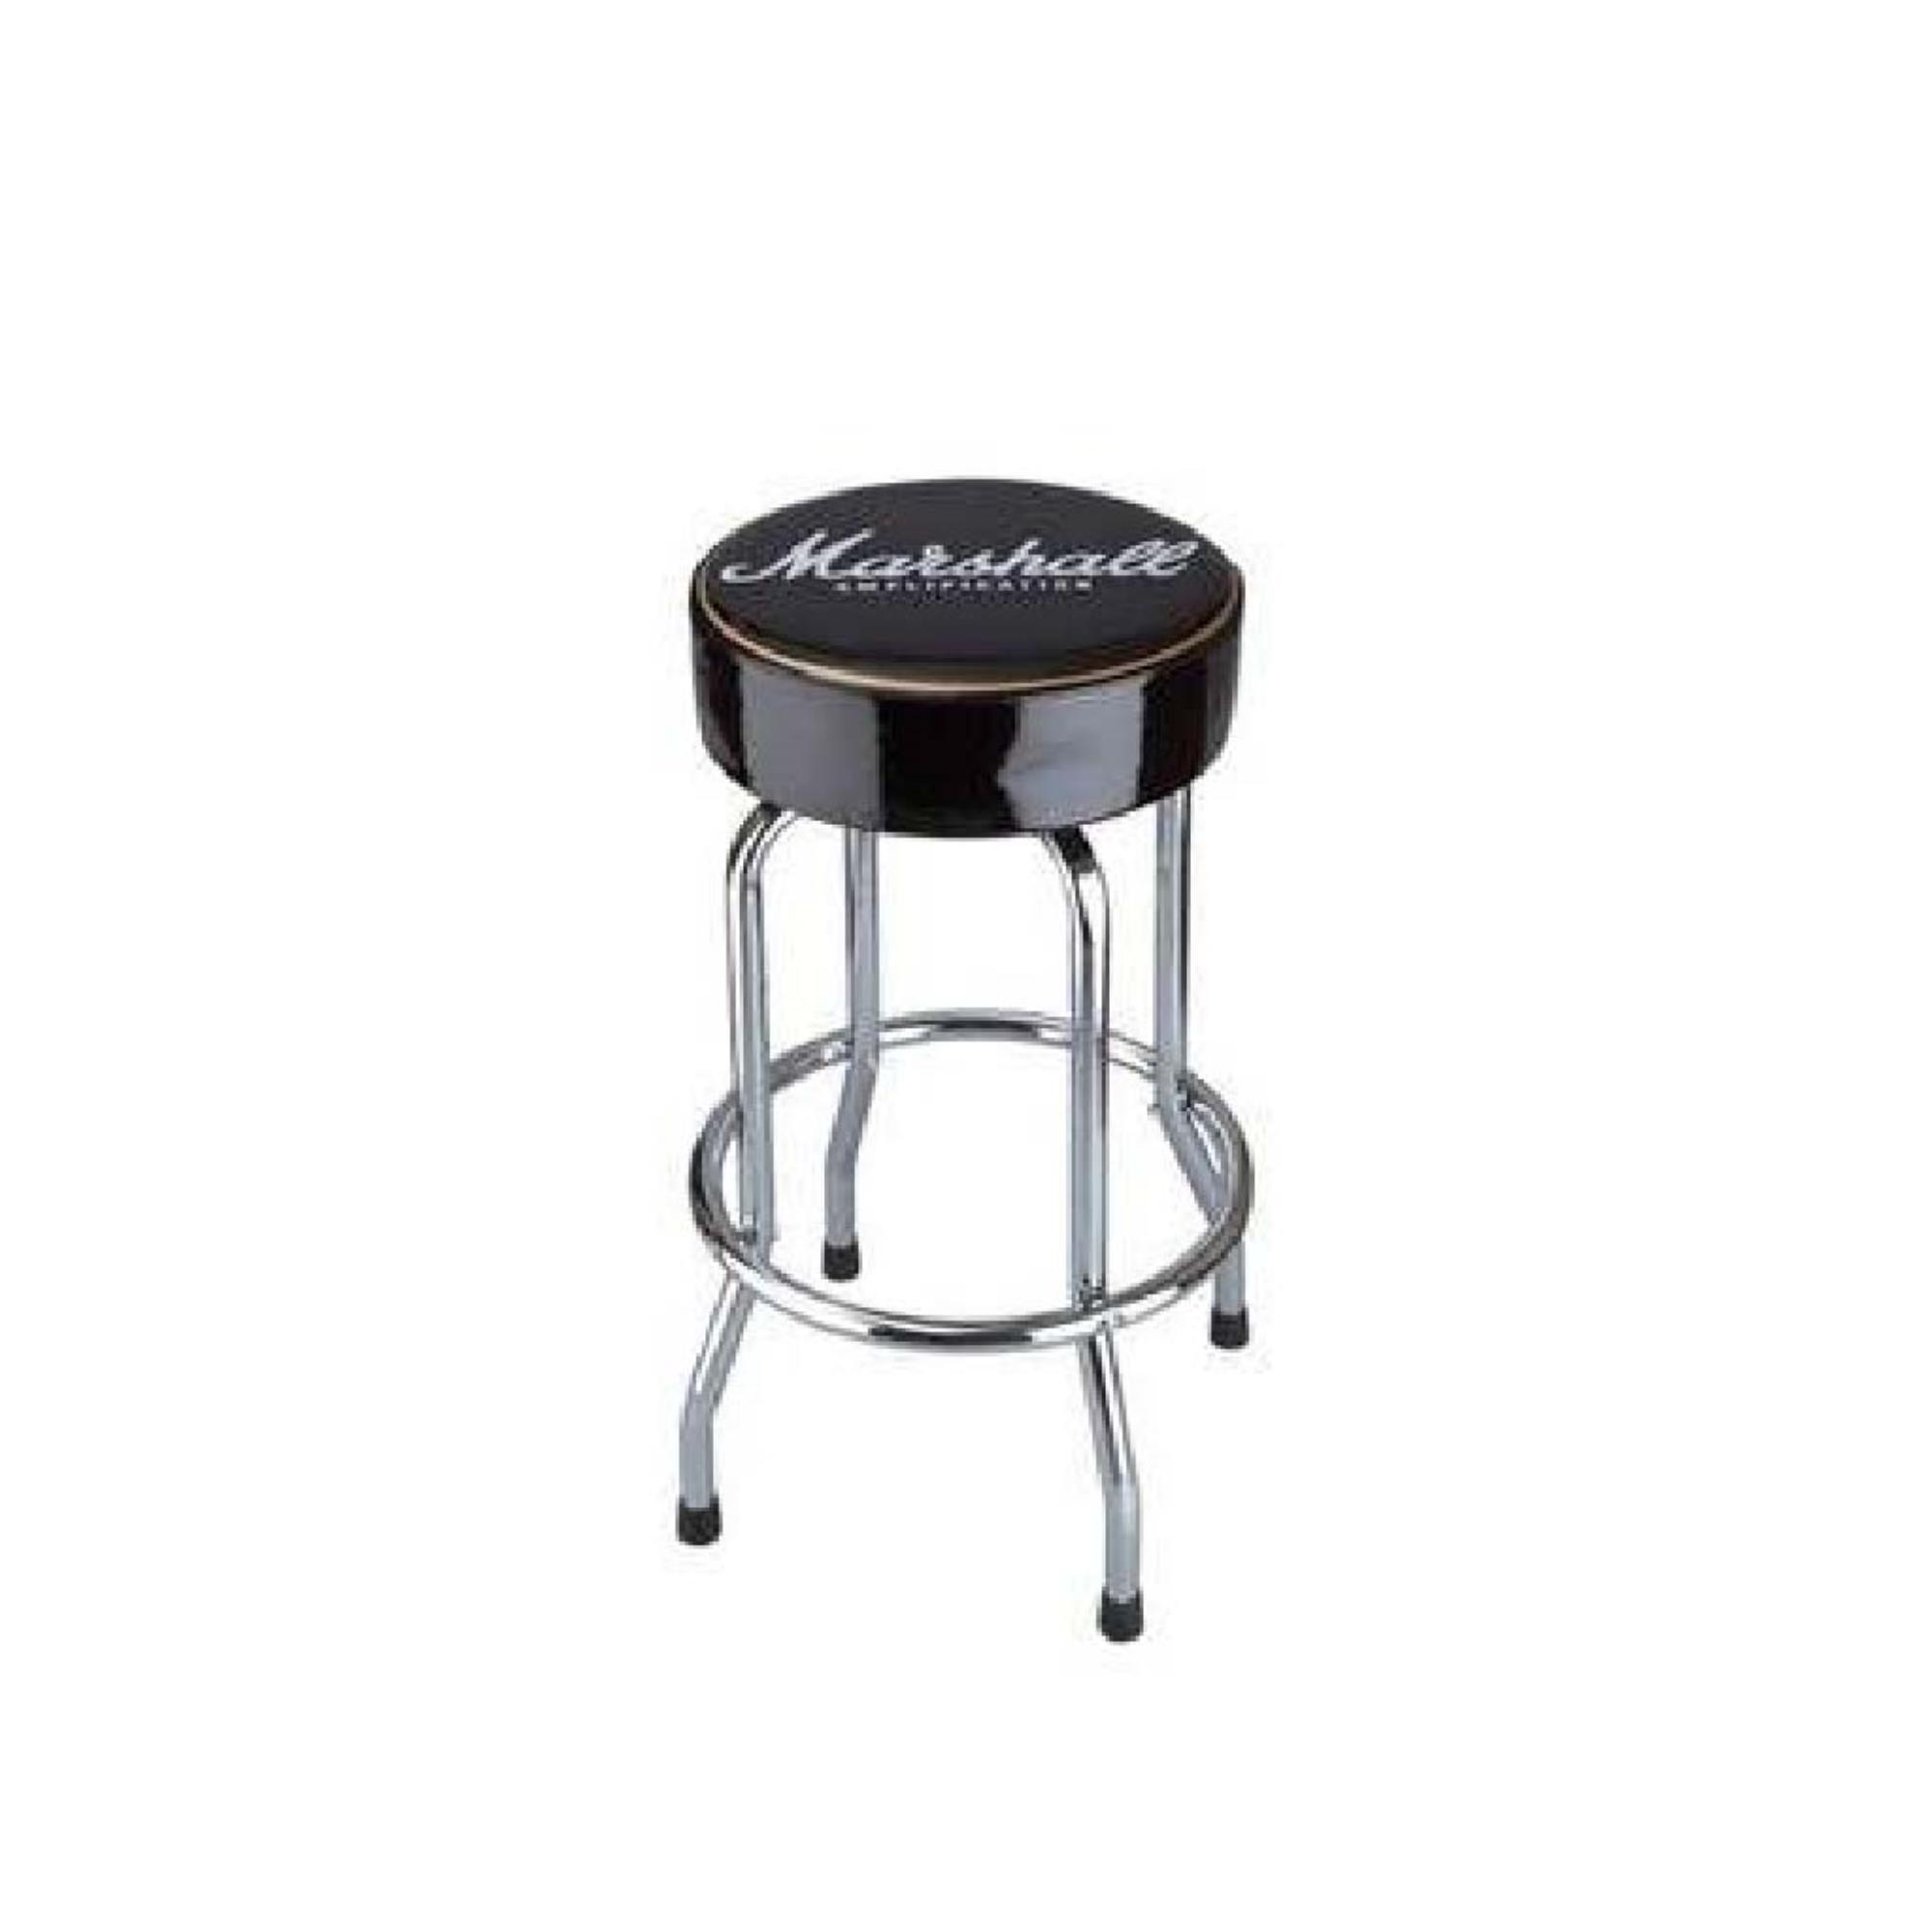 MARSHALL-GUITAR-STOOL-76CM-ACCS-00079-sku-24416